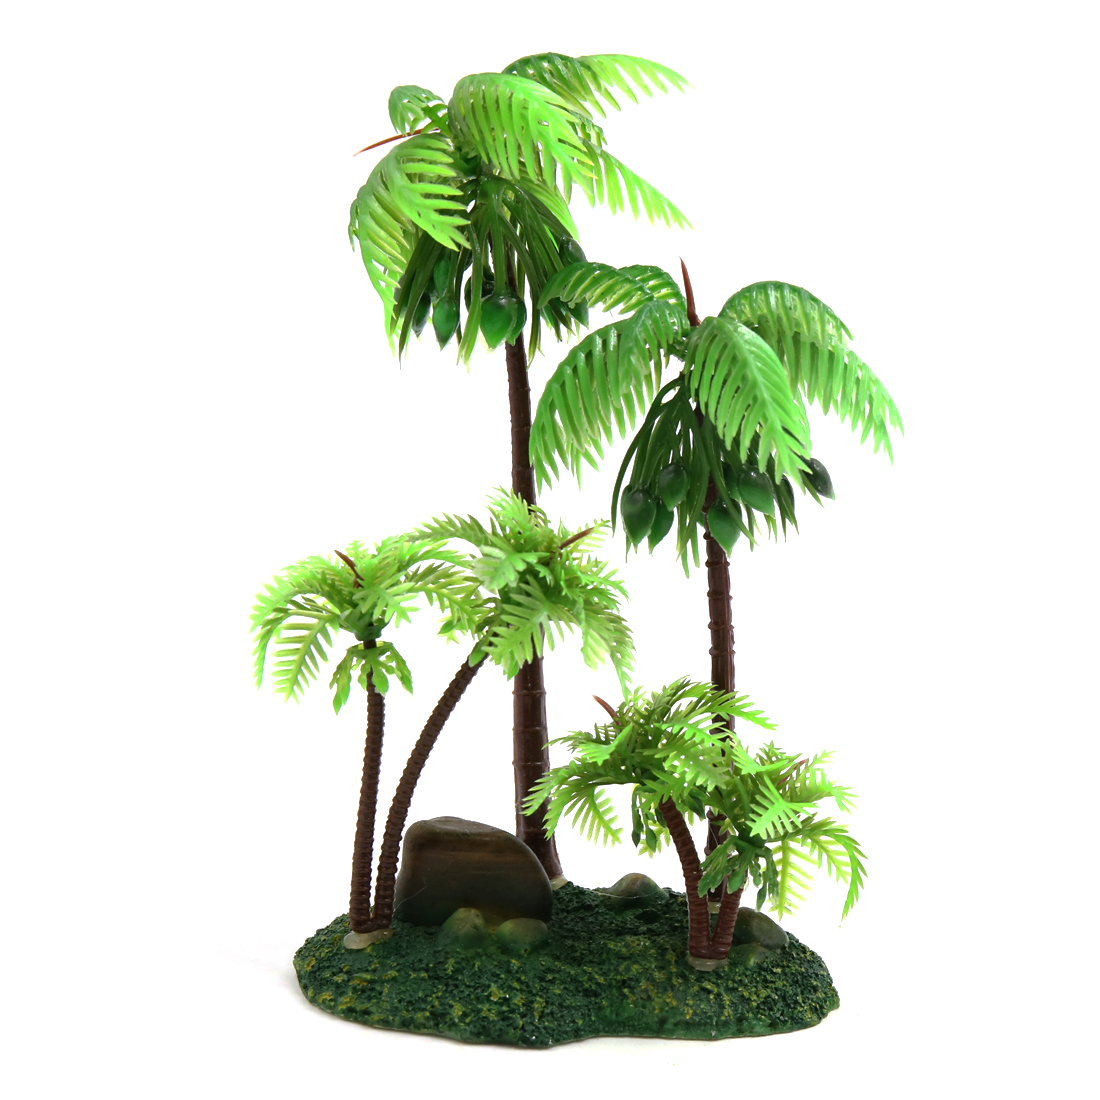 Plastic Coconut Tree Aquarium Terrarium Decor for Reptiles Amphibians